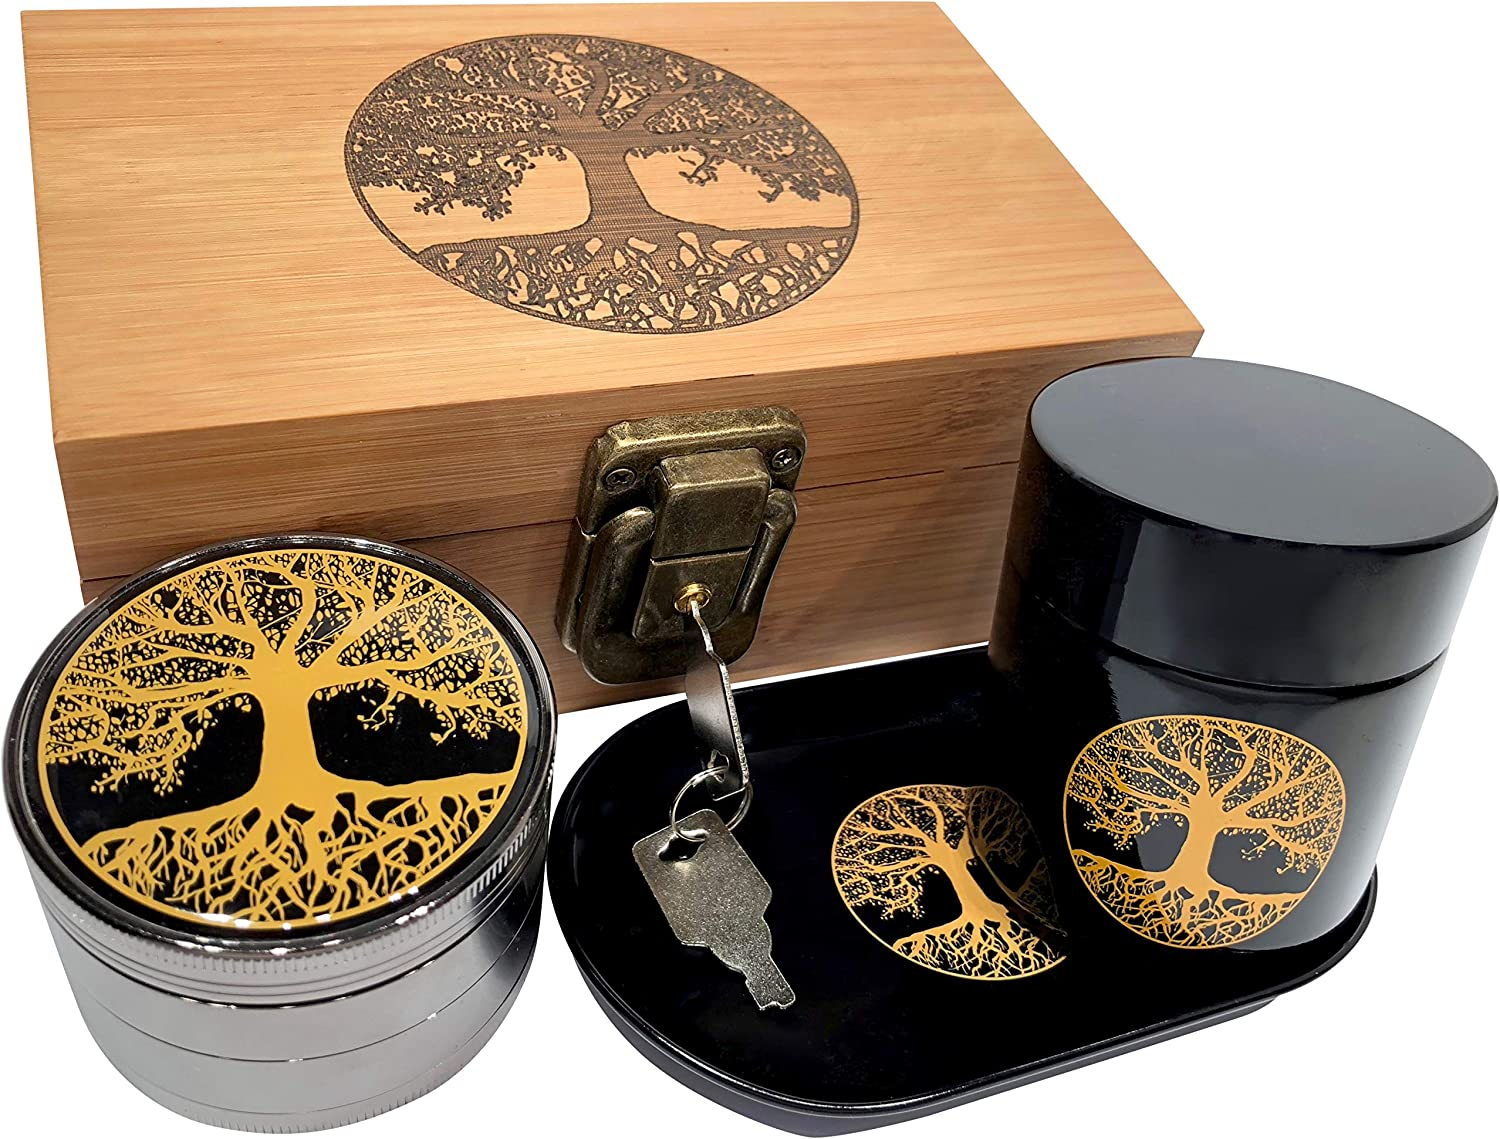 Swagstr Grinders Tree of Life Stash Box Combo